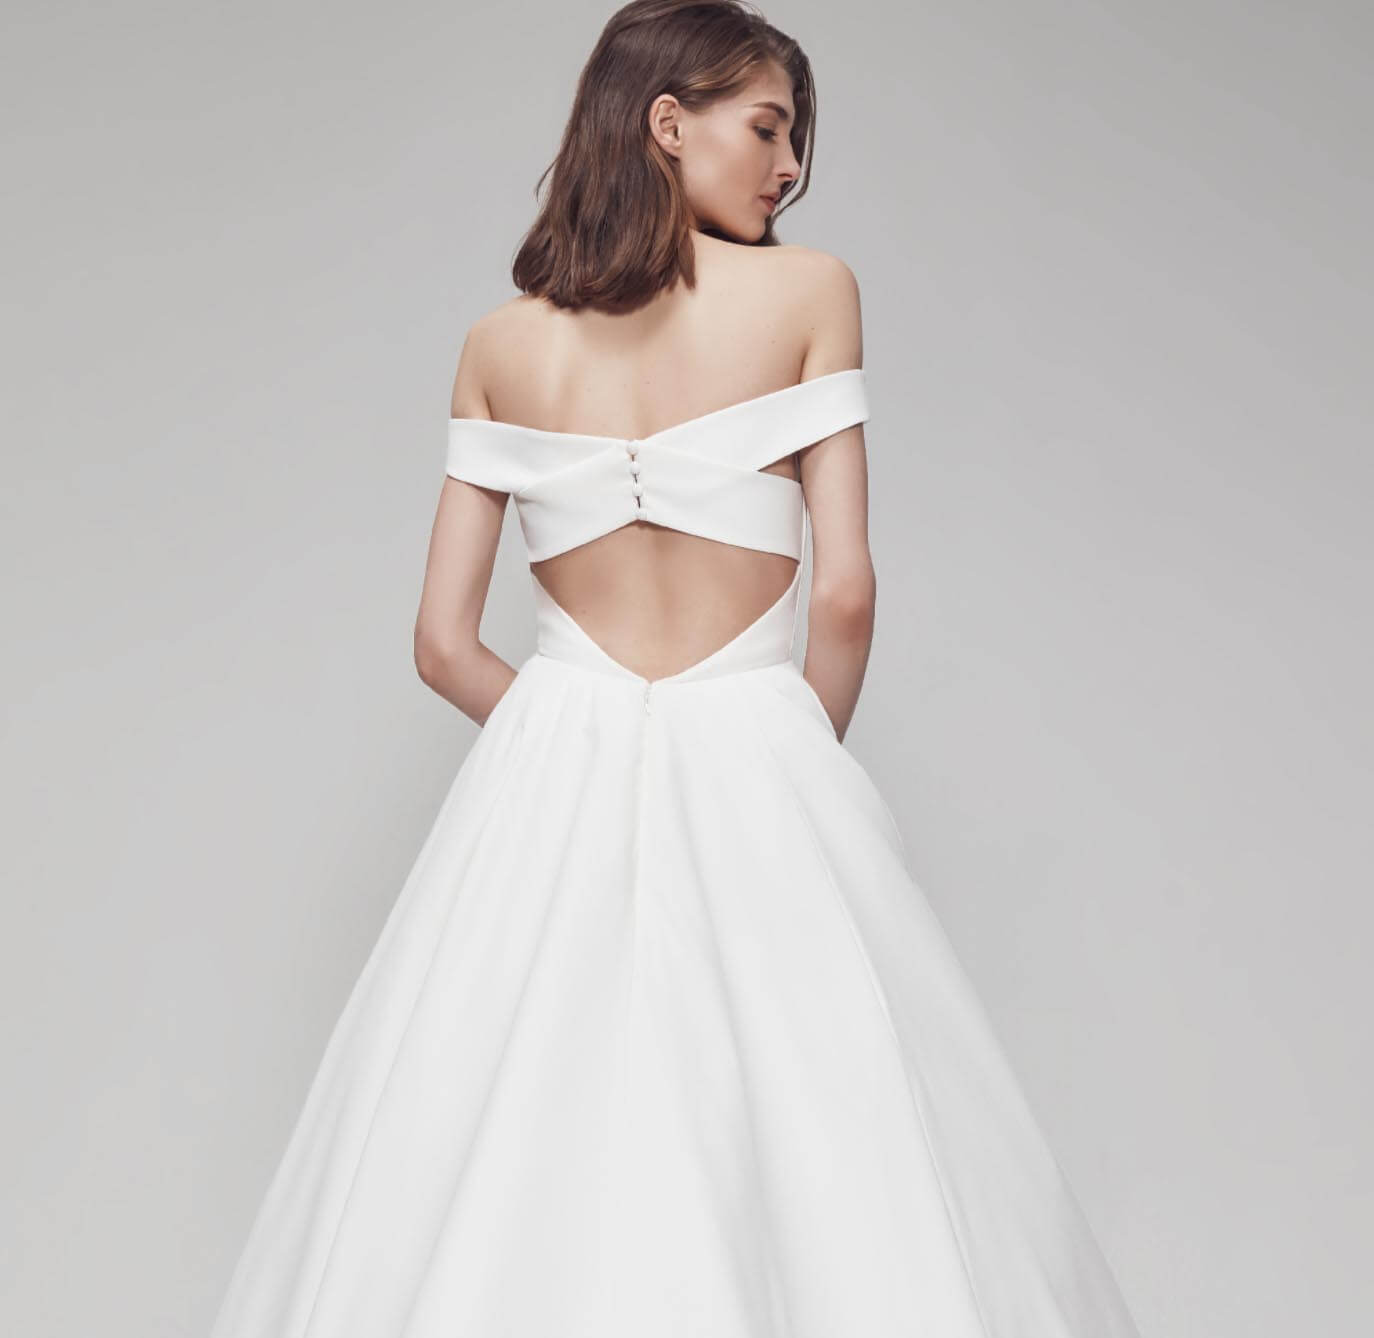 Model wearing a bridal collection gown